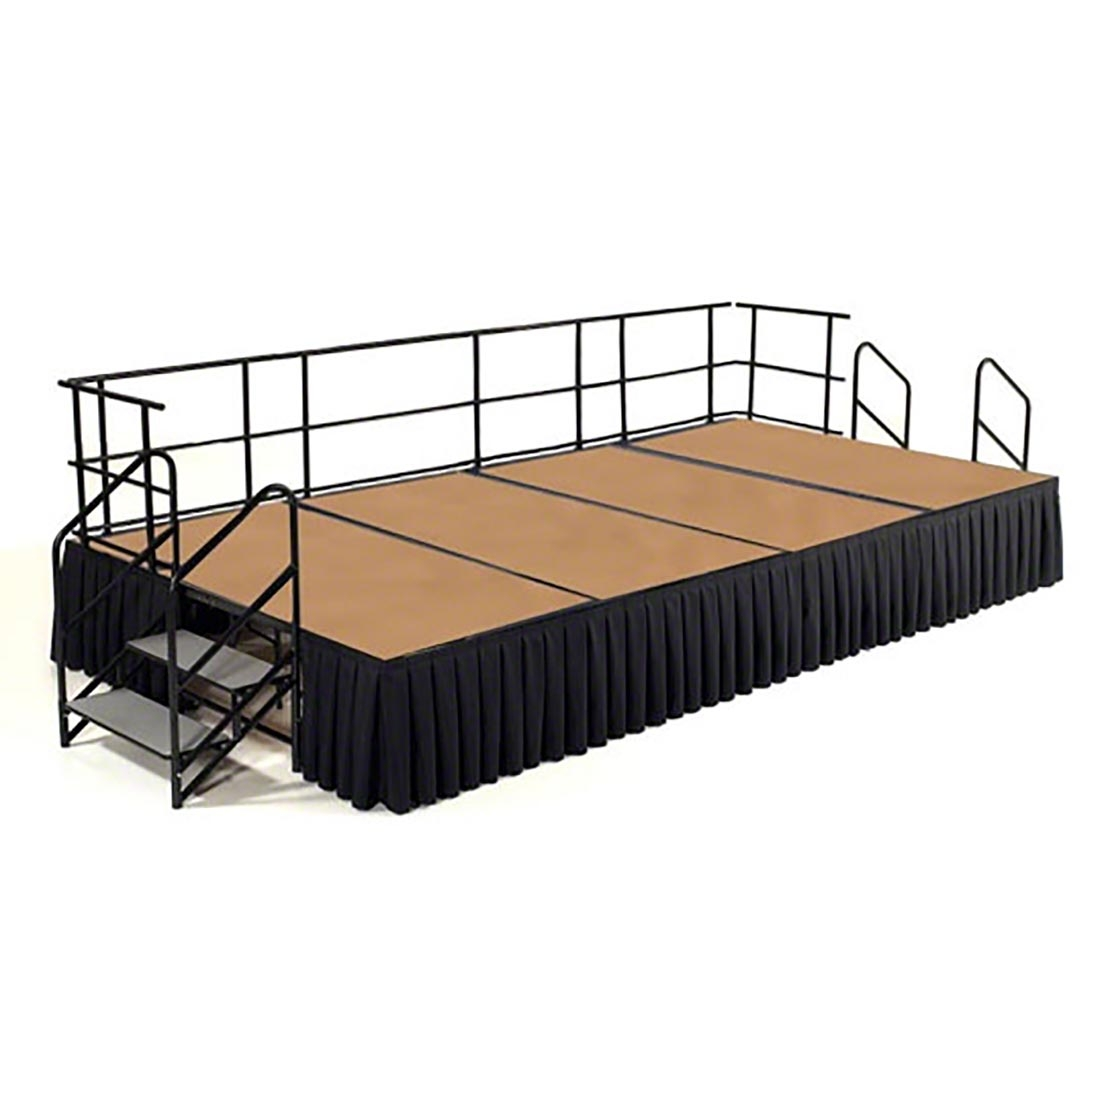 NPS 12' x 8' Hardboard Portable Stage Package with Steps & Rails - 96 sqft